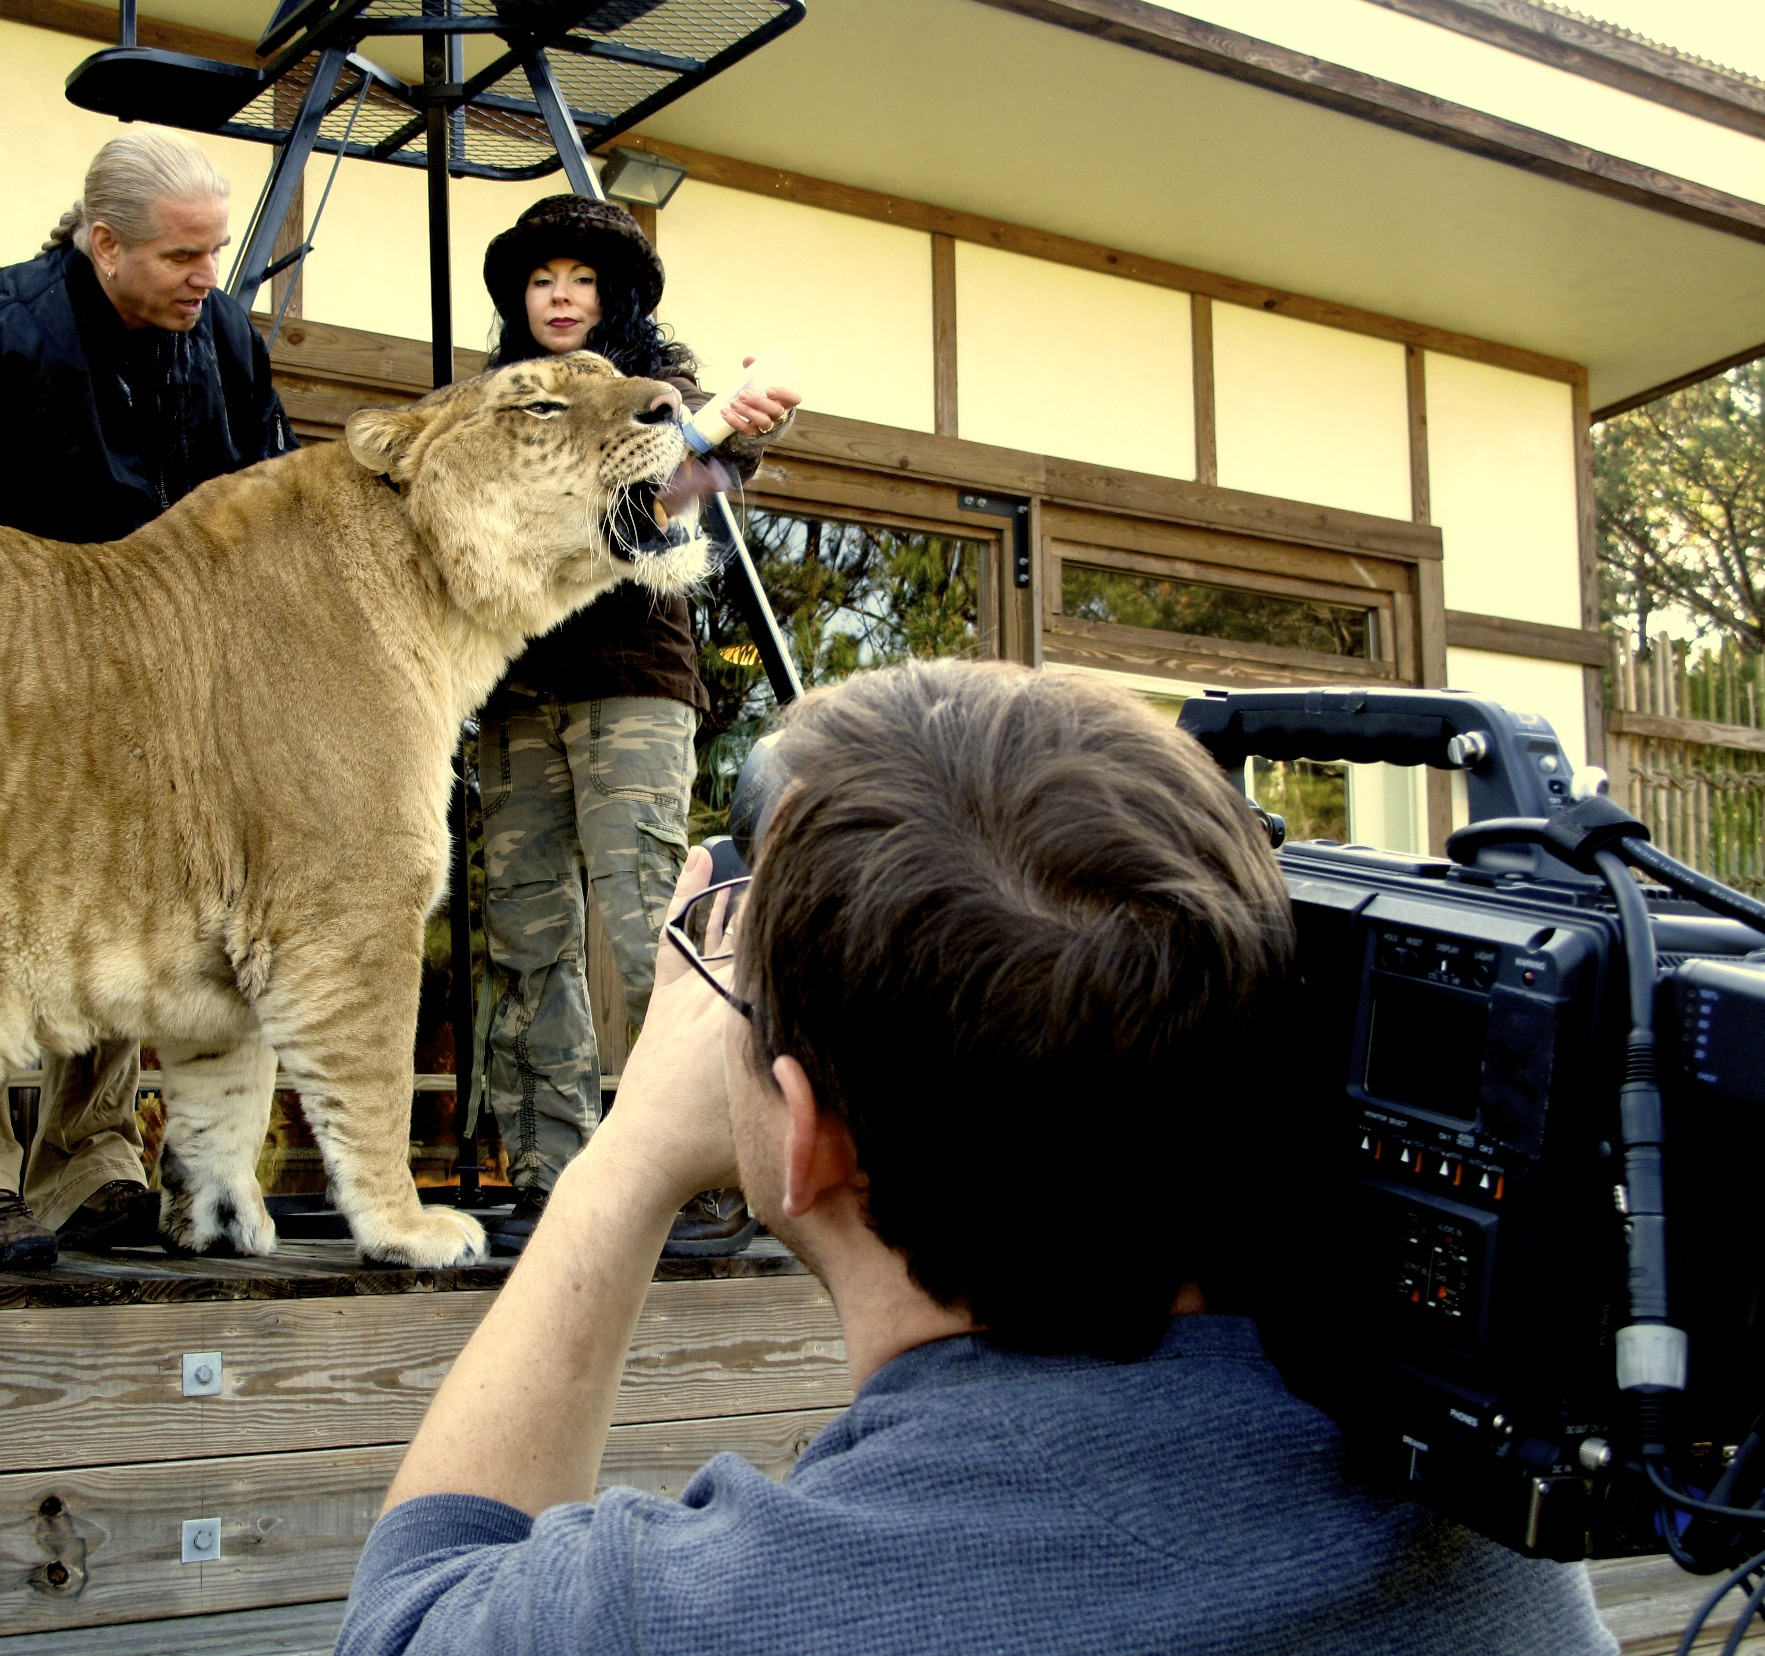 Feeding Liger Raleigh Video Crew and ABCs Nightline, Enter the Eye of the Liger